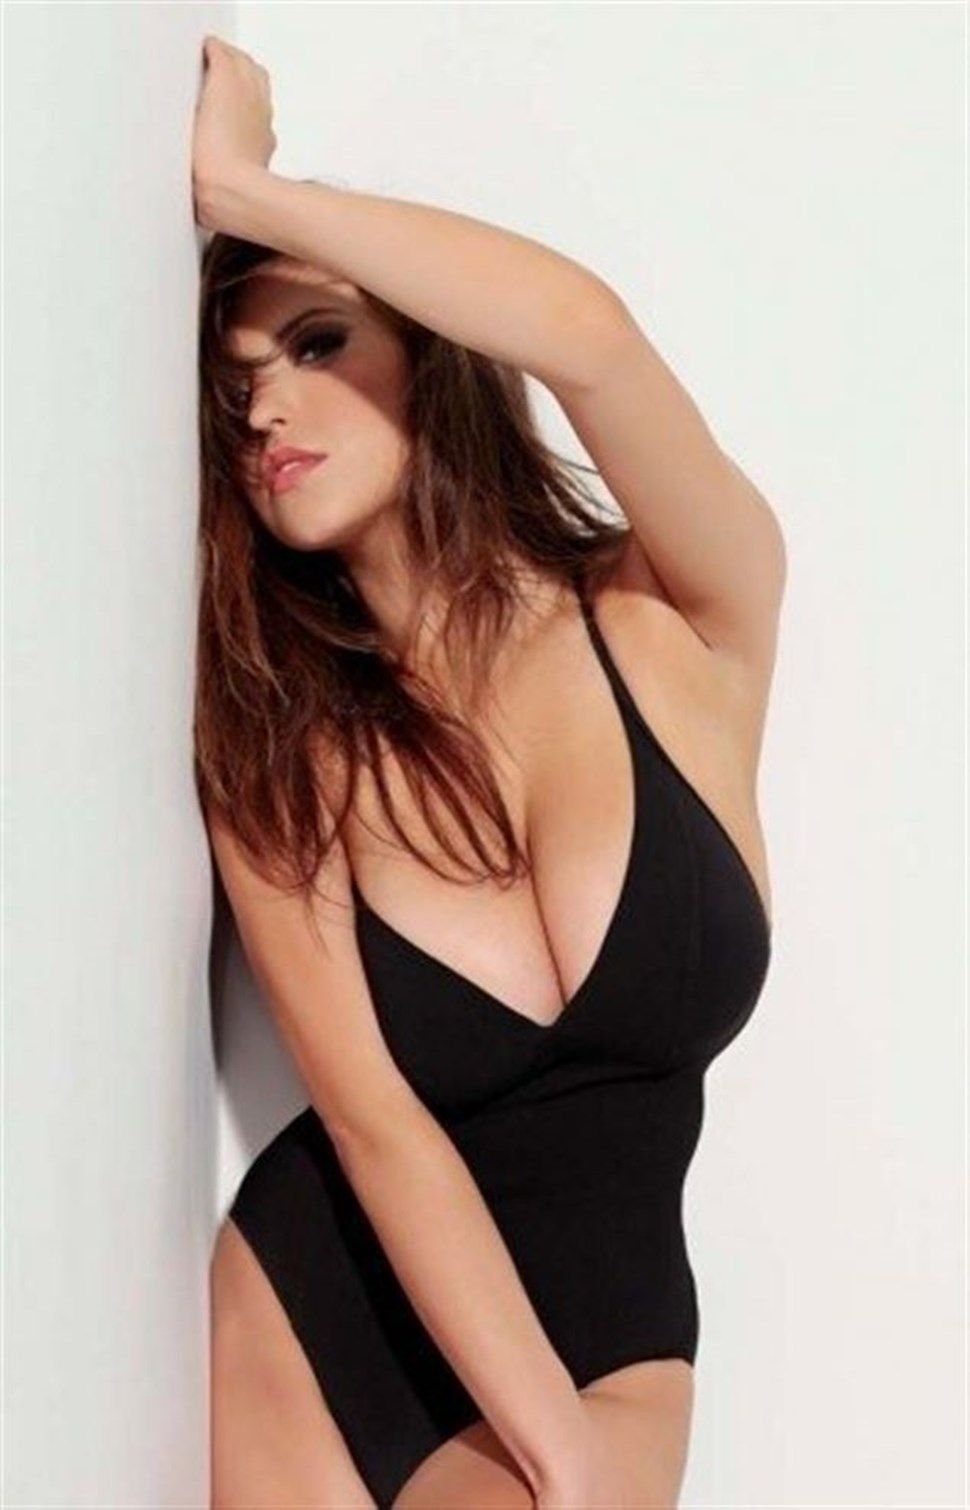 Francoise Boufhal Hot in Black Lingerie